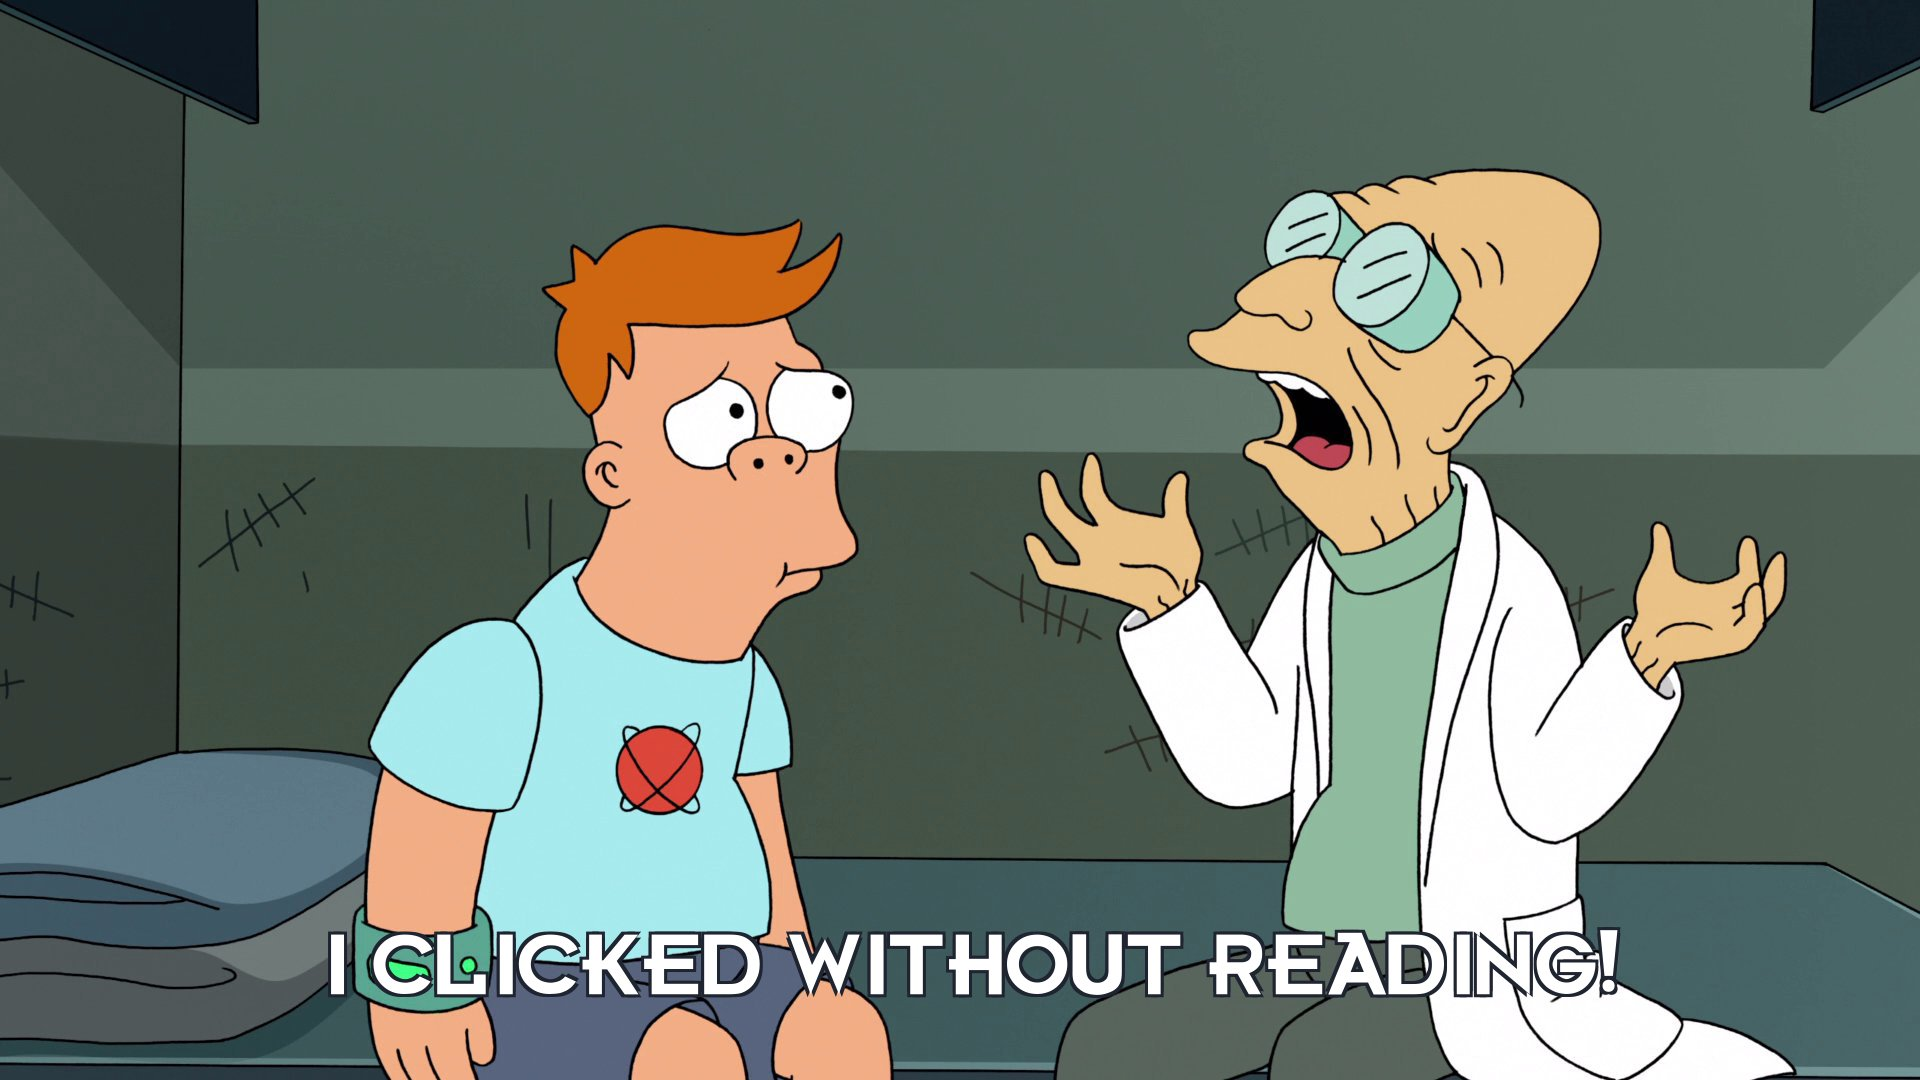 Prof Hubert J Farnsworth: I clicked without reading!